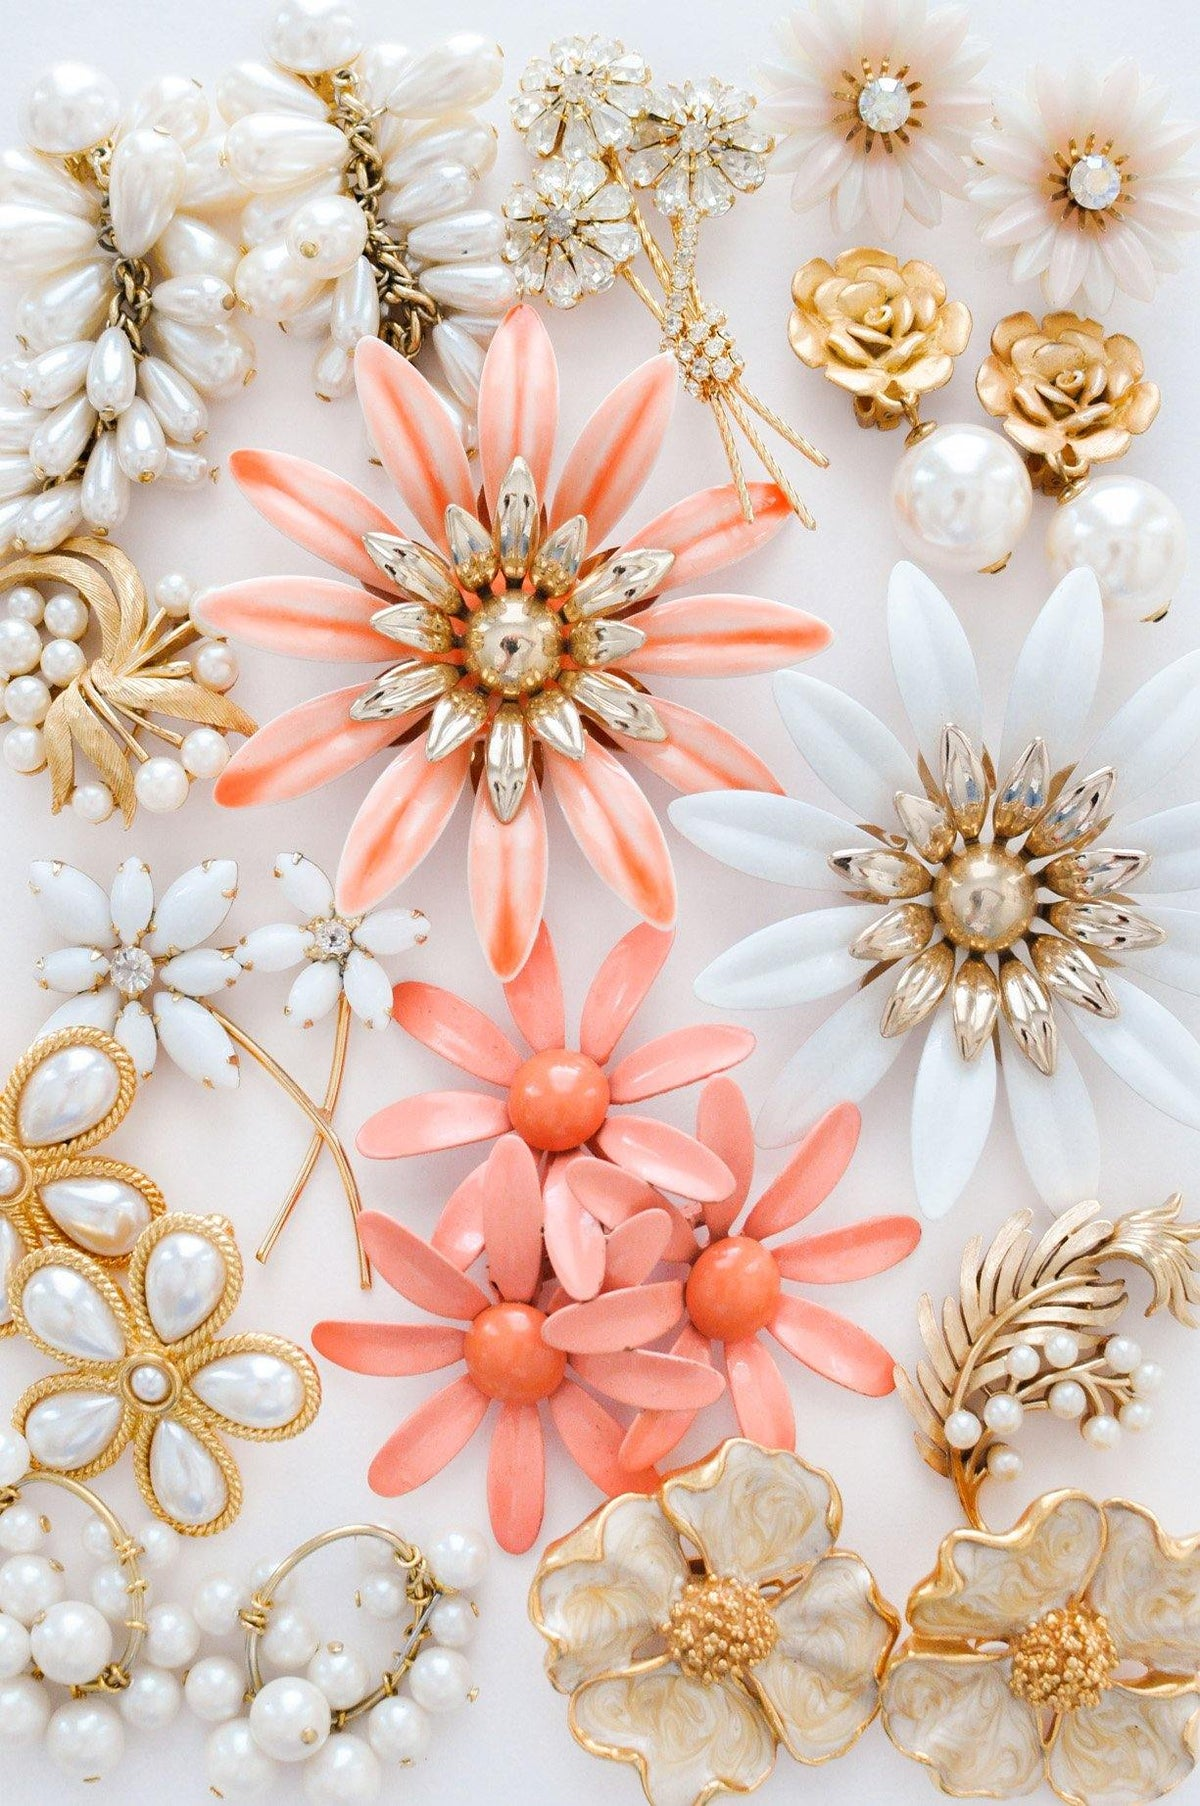 Vintage brooches and earrings from Sweet & Spark.